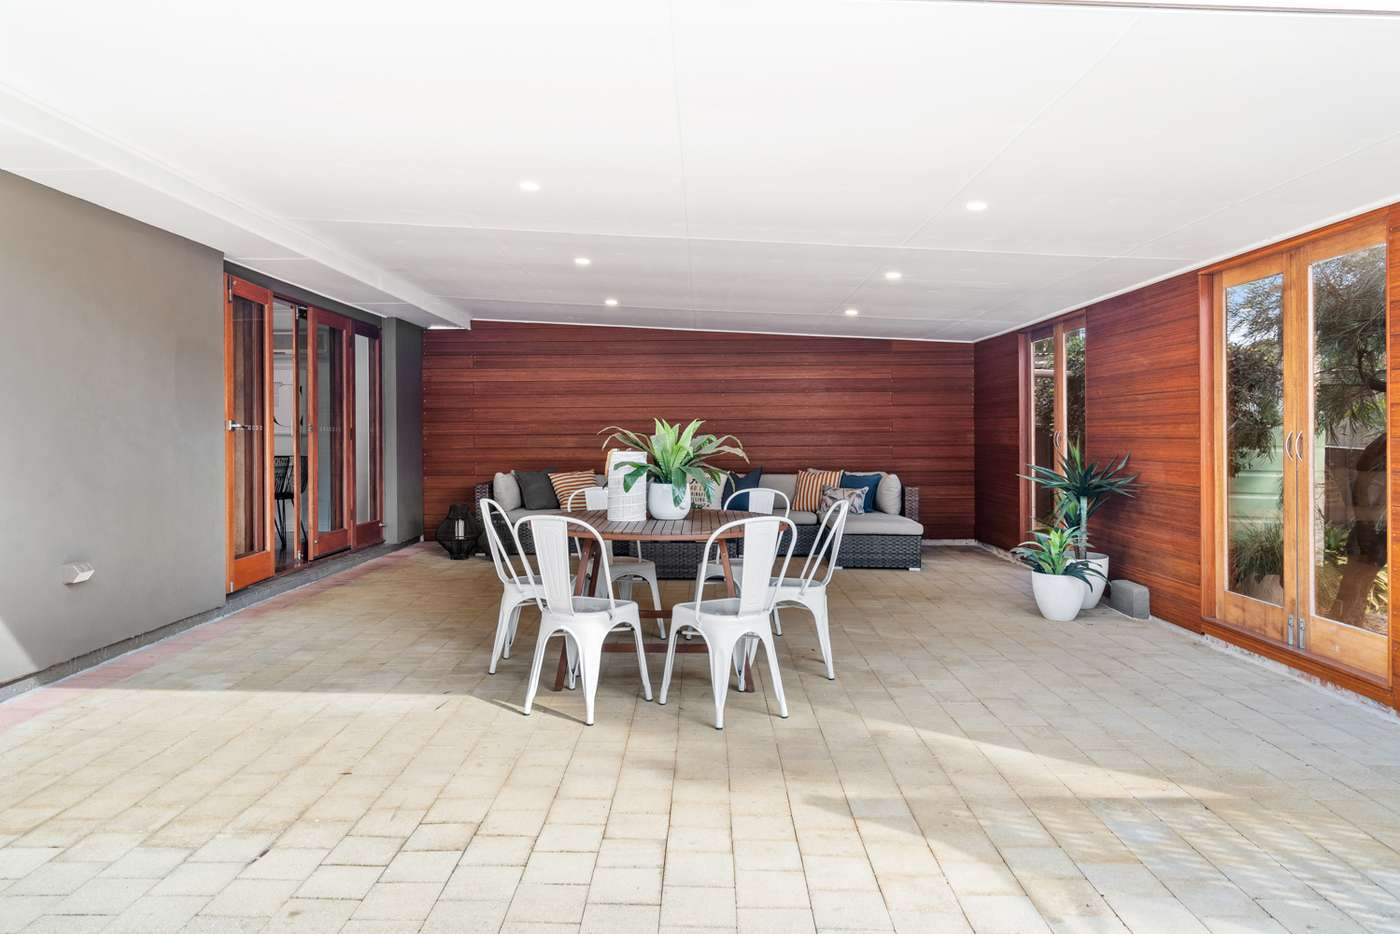 Seventh view of Homely house listing, 30 Thomas Mitchell Road, Killarney Vale NSW 2261